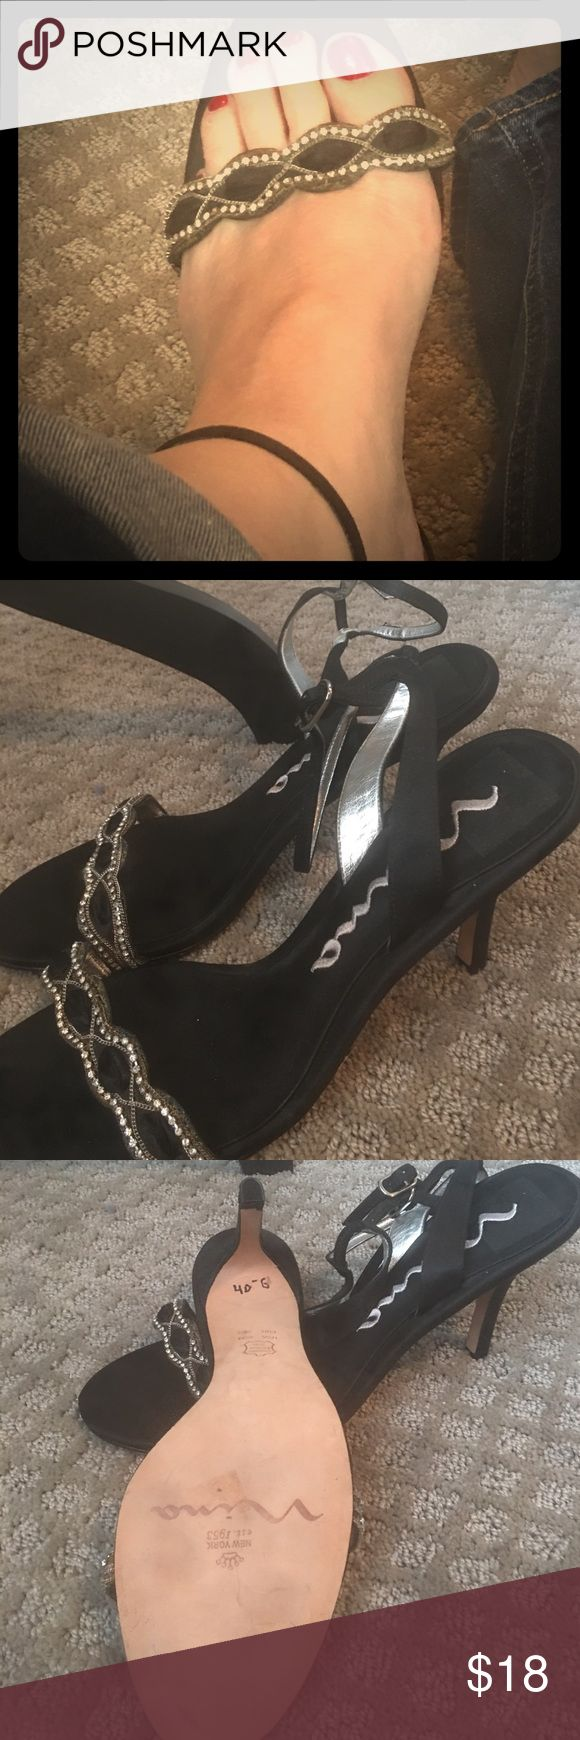 """Nina bling heels Nina black with bling toe heels -3"""" heels with a cute ankle strap for added feminine touch - prom wedding with jeans a pencil skirt work play you name it! Nina Shoes Heels"""